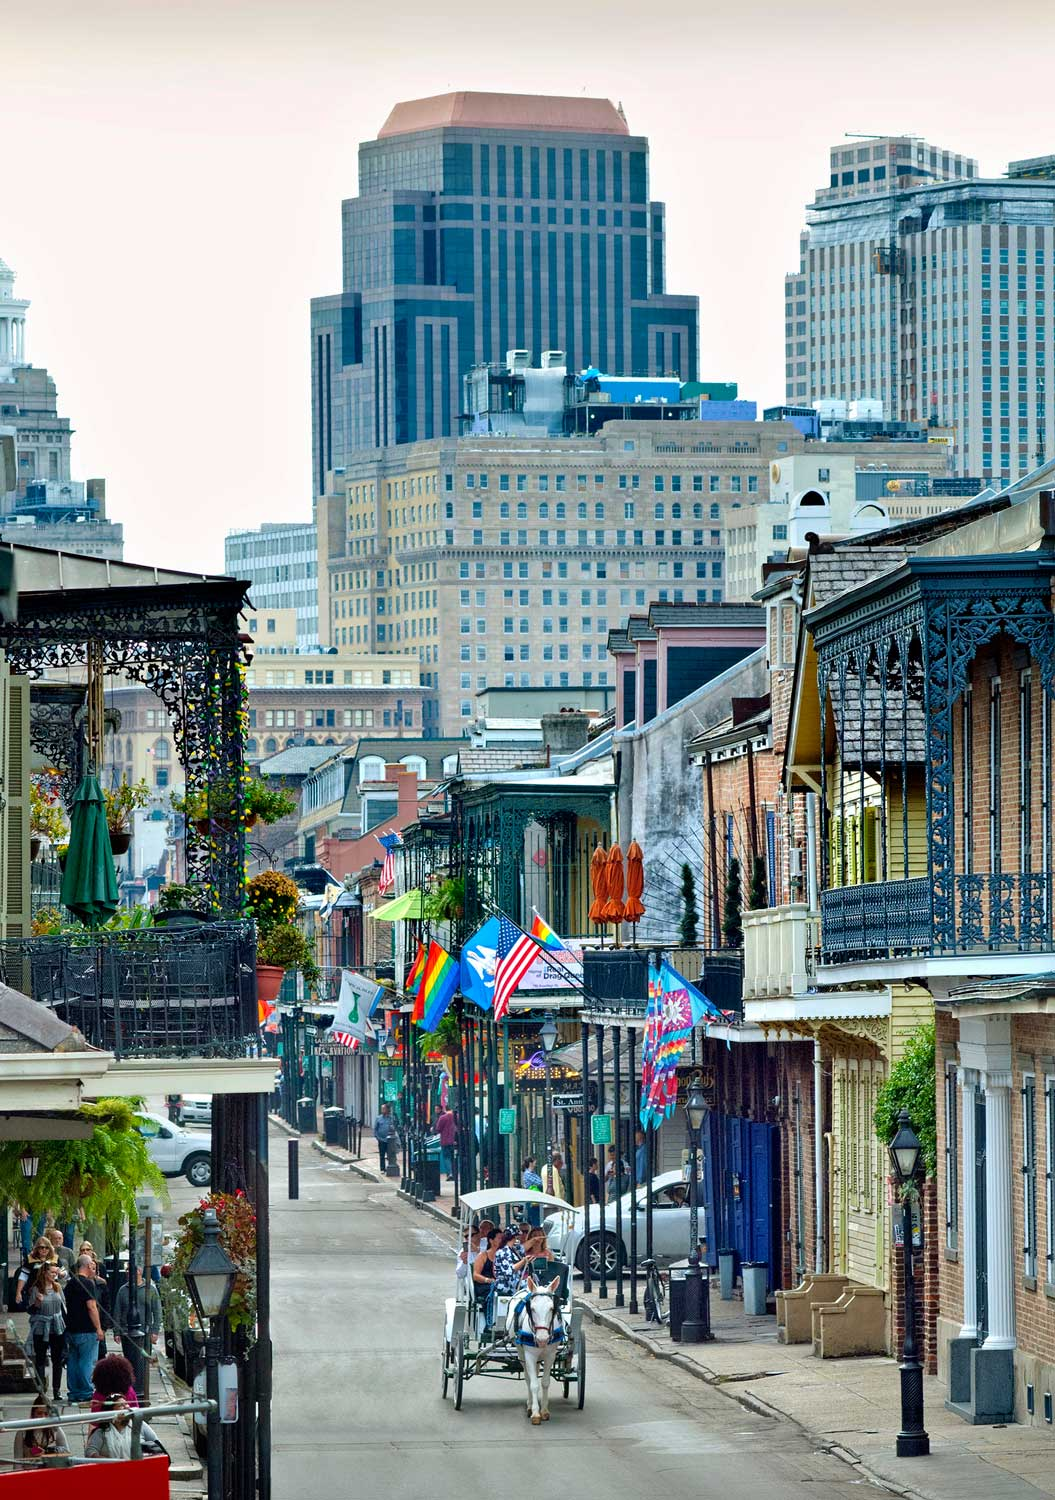 New Orleans, Louisiana